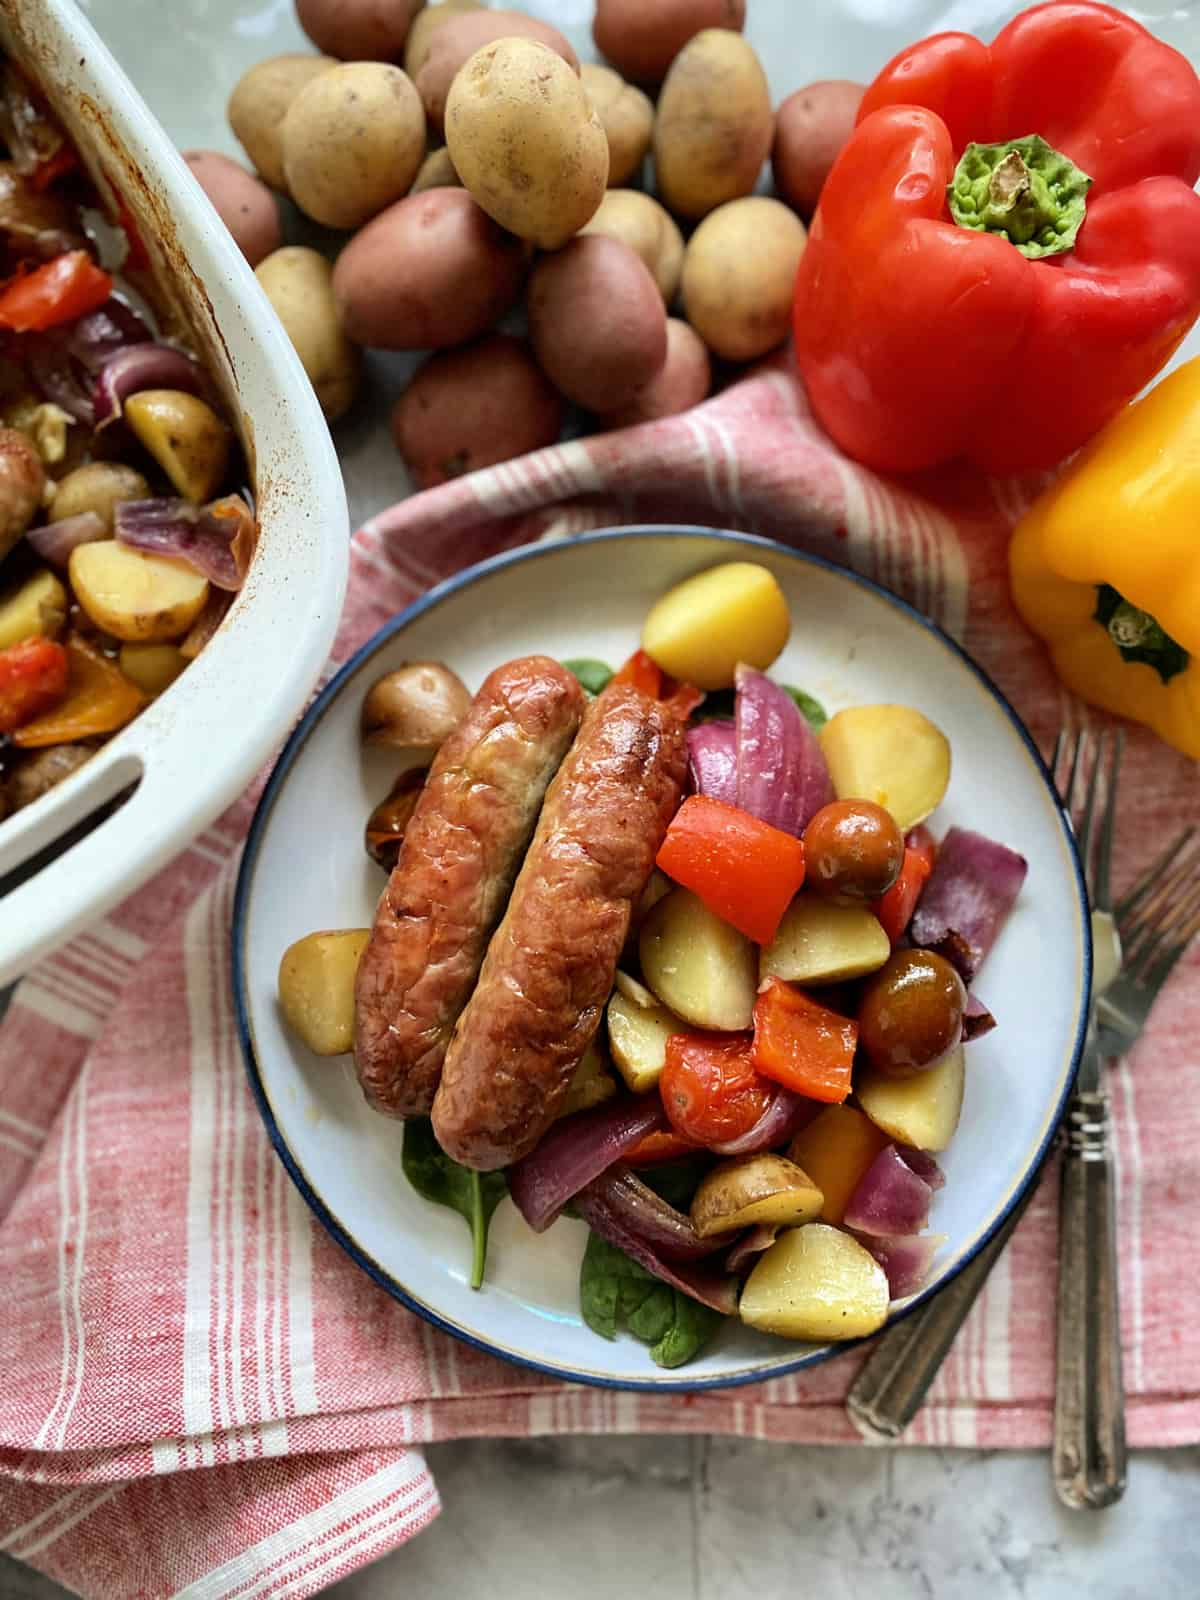 Top view of a plate of Italian sausage with potatoes, bell peppers, and onions.